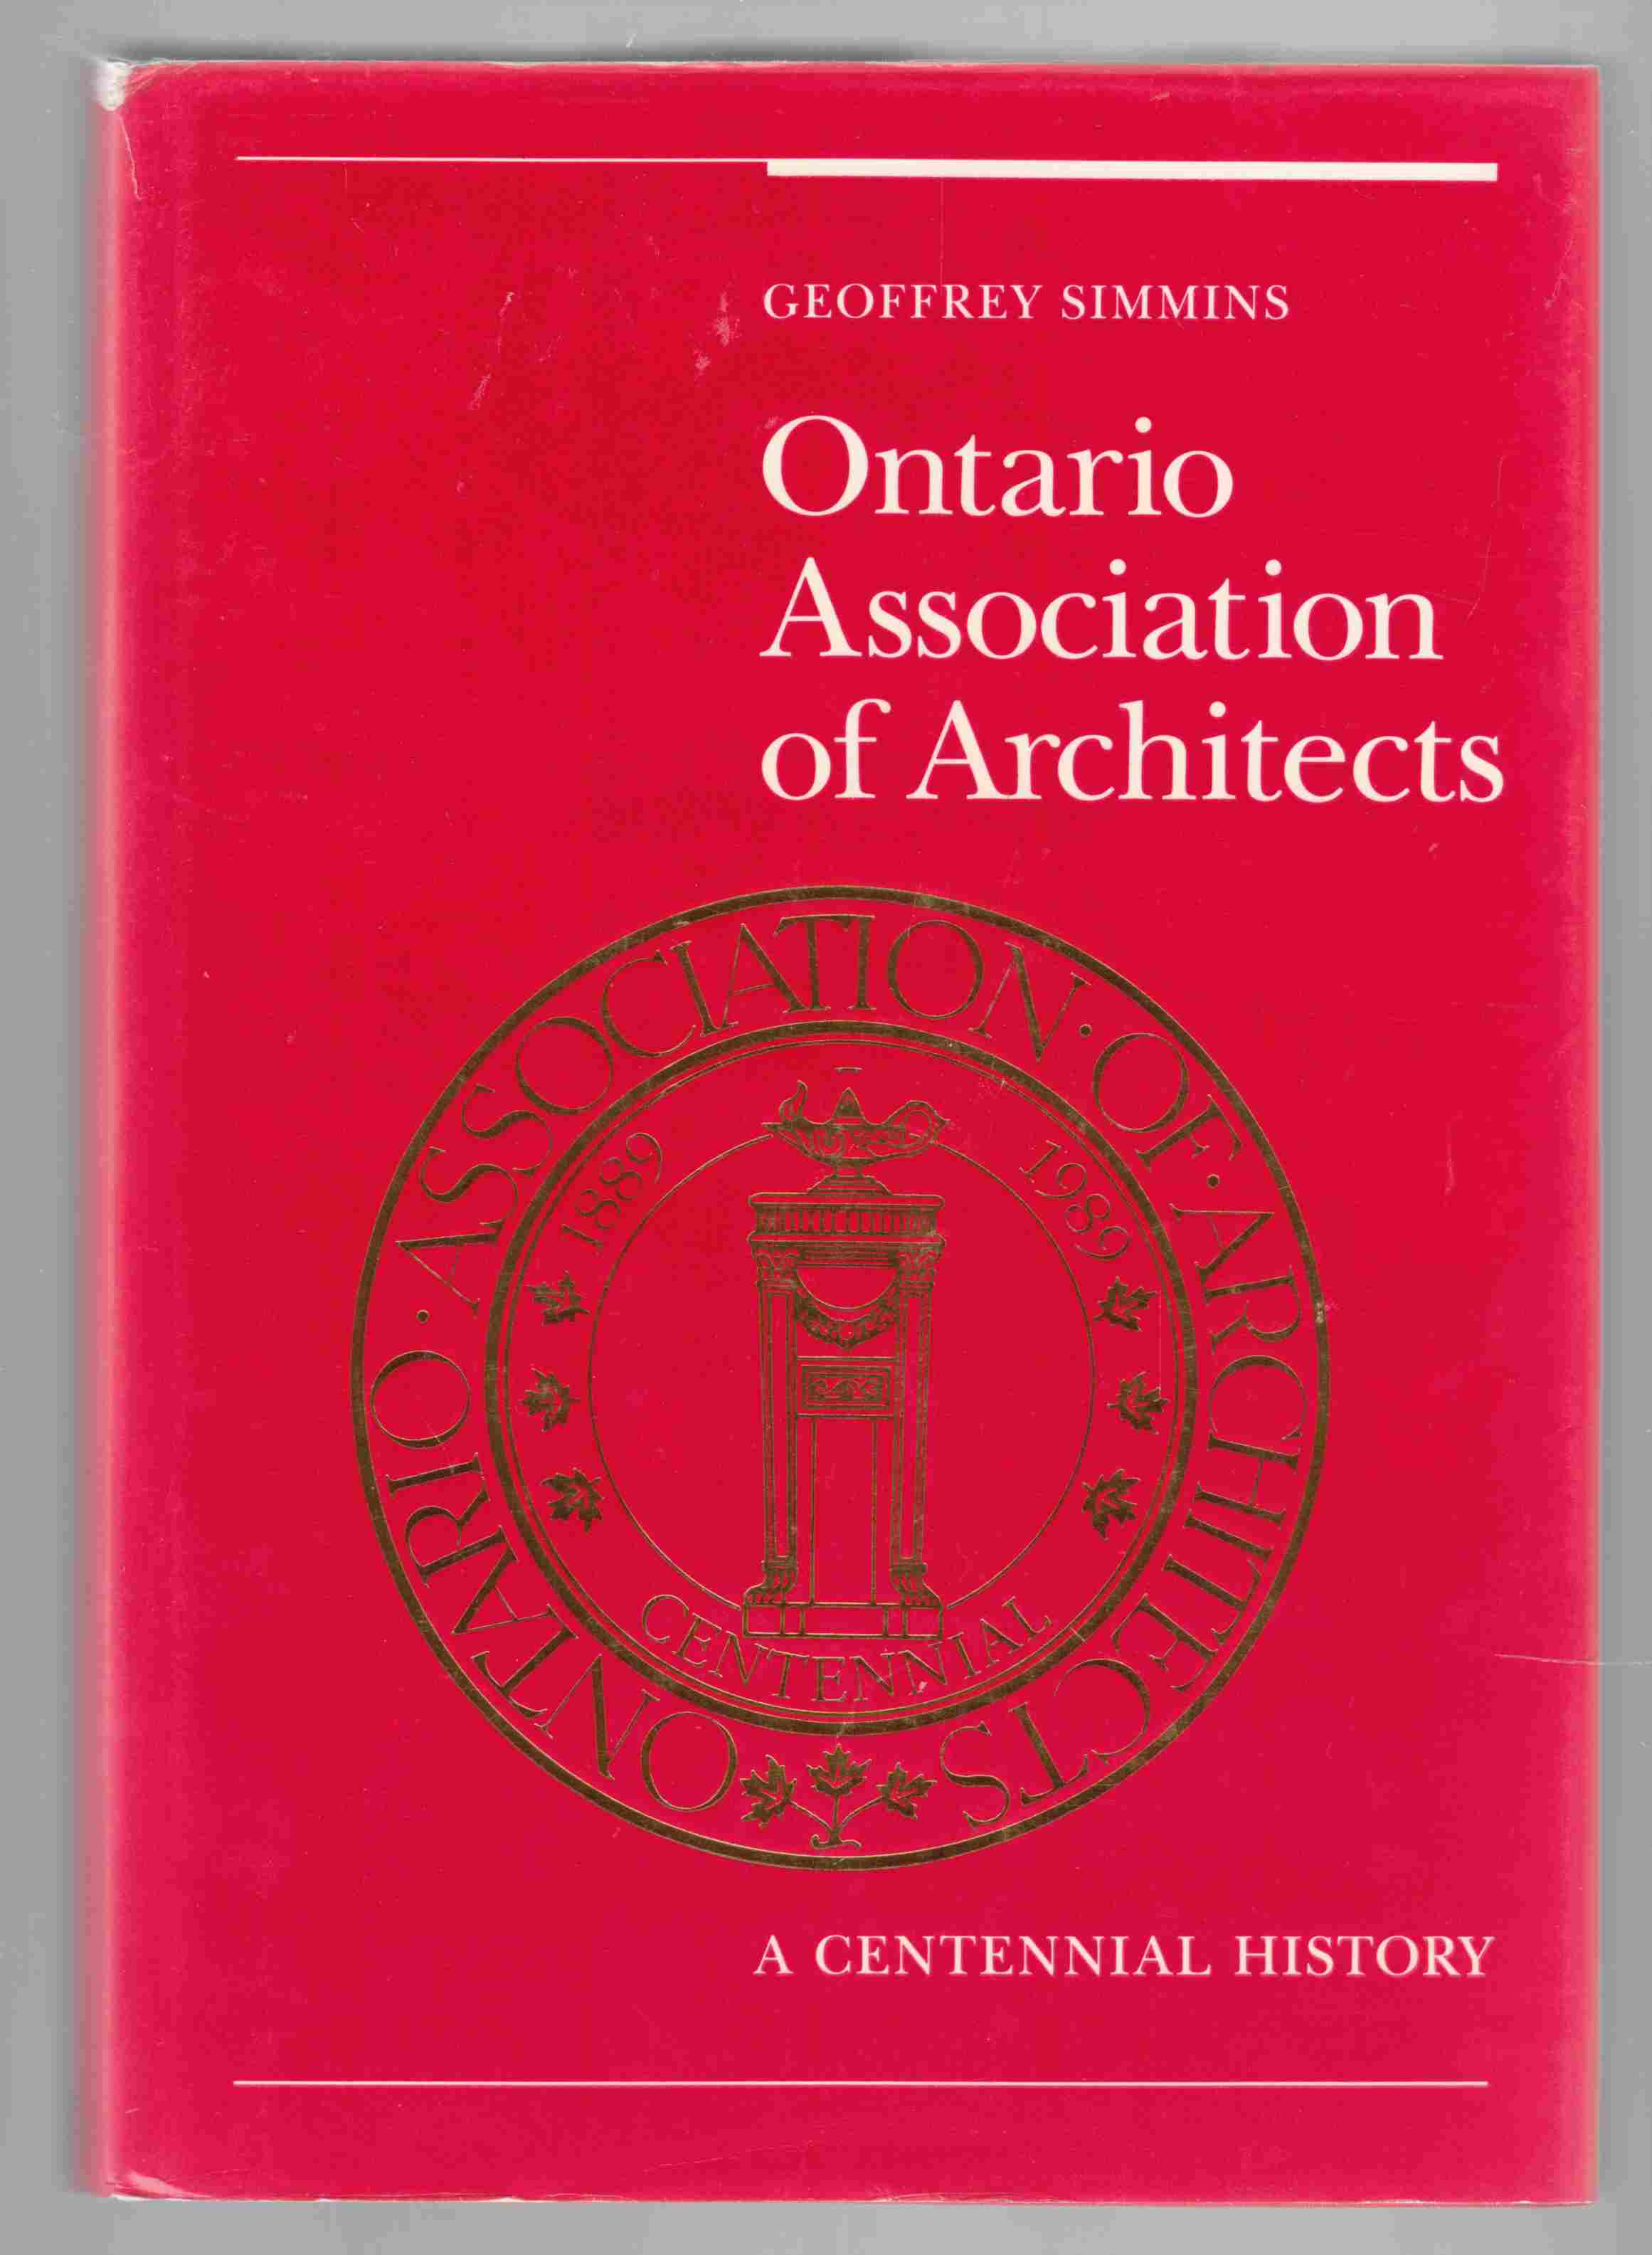 Image for Ontario Association of Architects A Centennial History 1889-1989